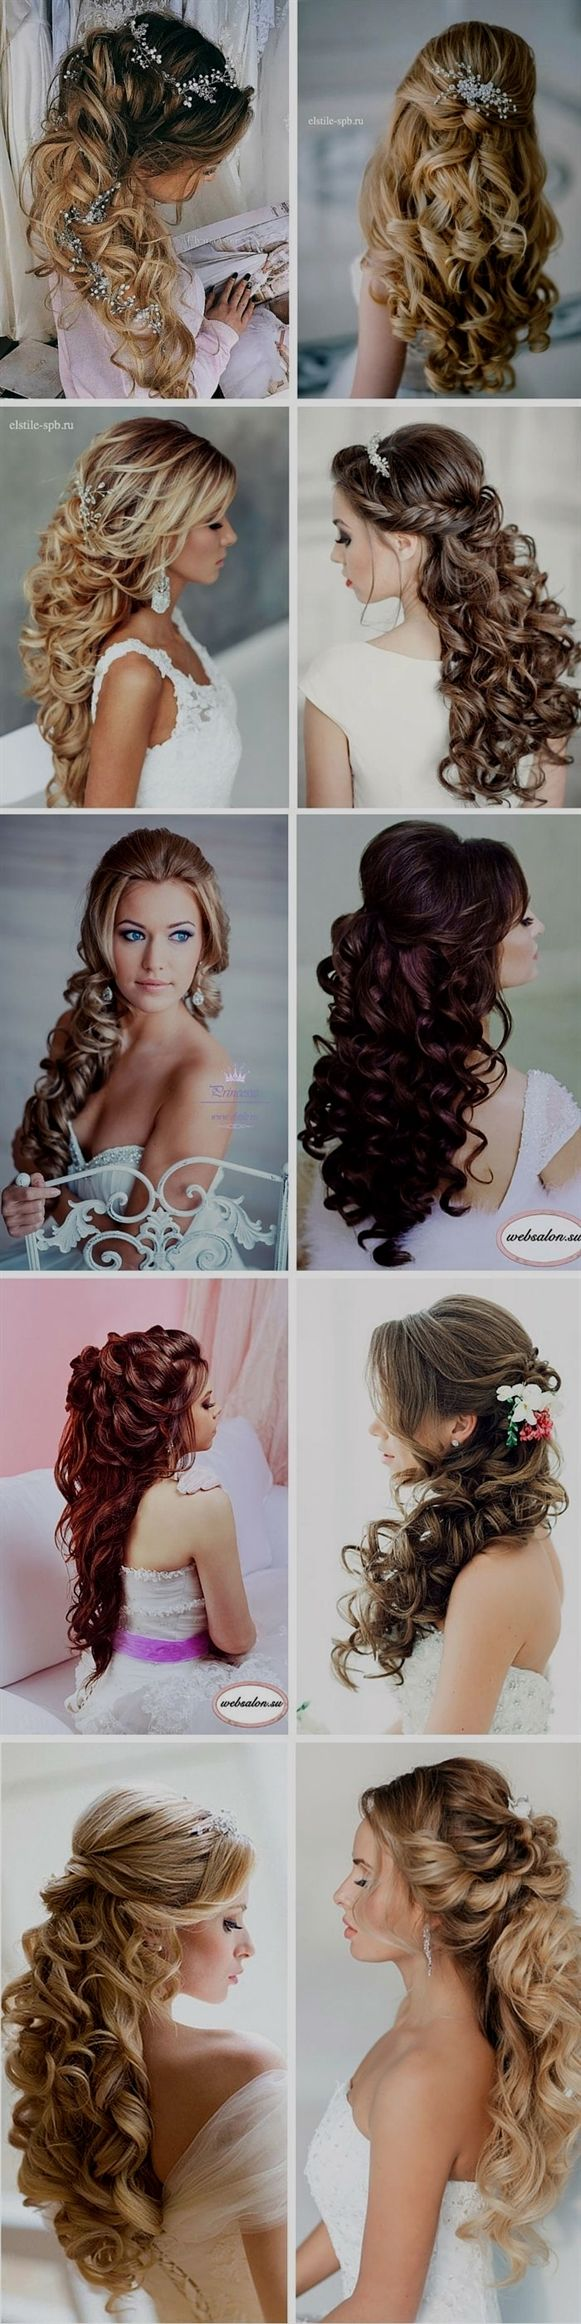 We collected the best half up half down wedding hairstyles ideas